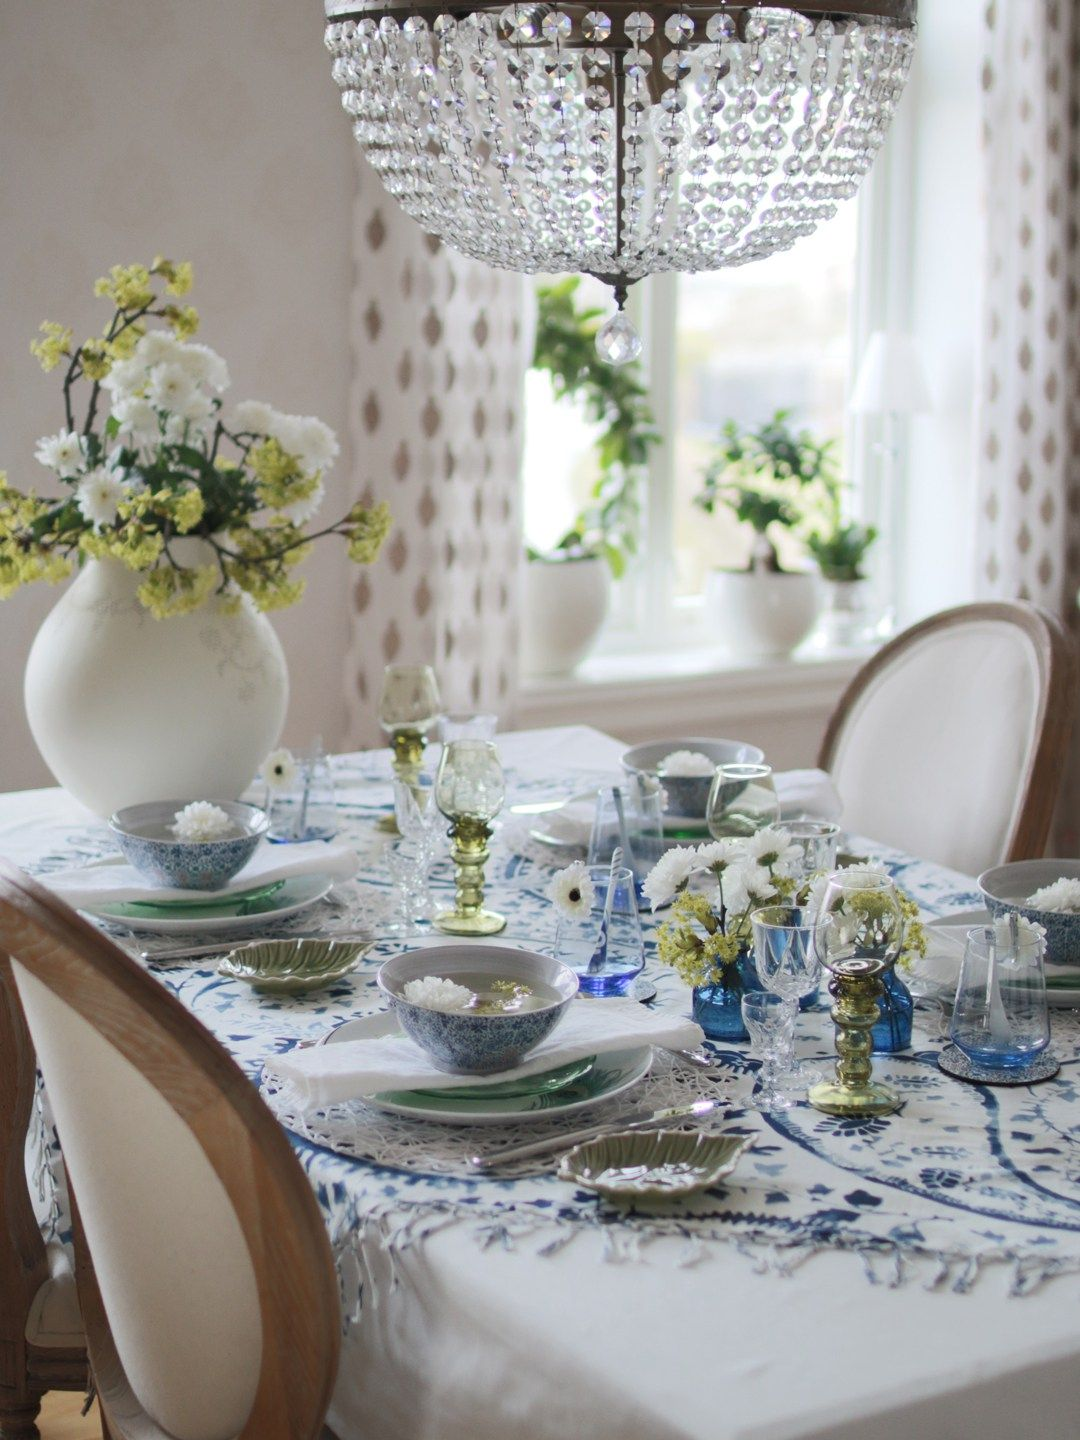 Summer table setting. Photo and styling: Marianne de Bourg/mariannedebourg.no